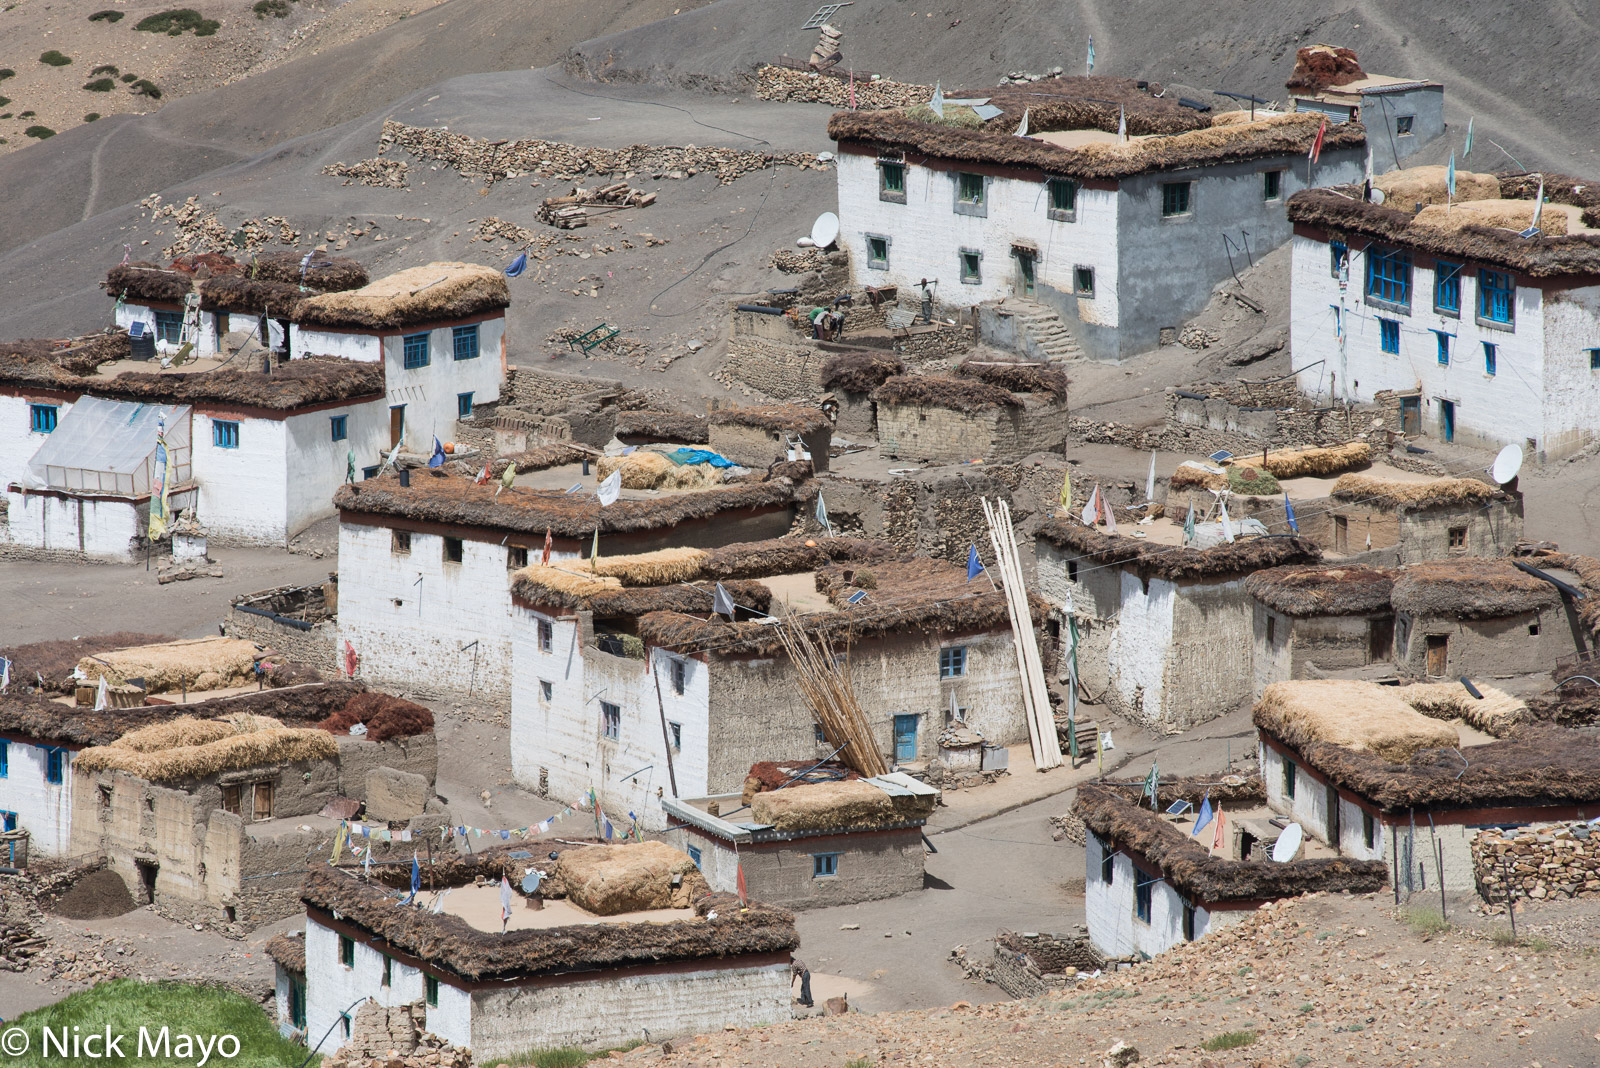 Flat roofed whitewashed houses in the village of Hikkim in Spiti.